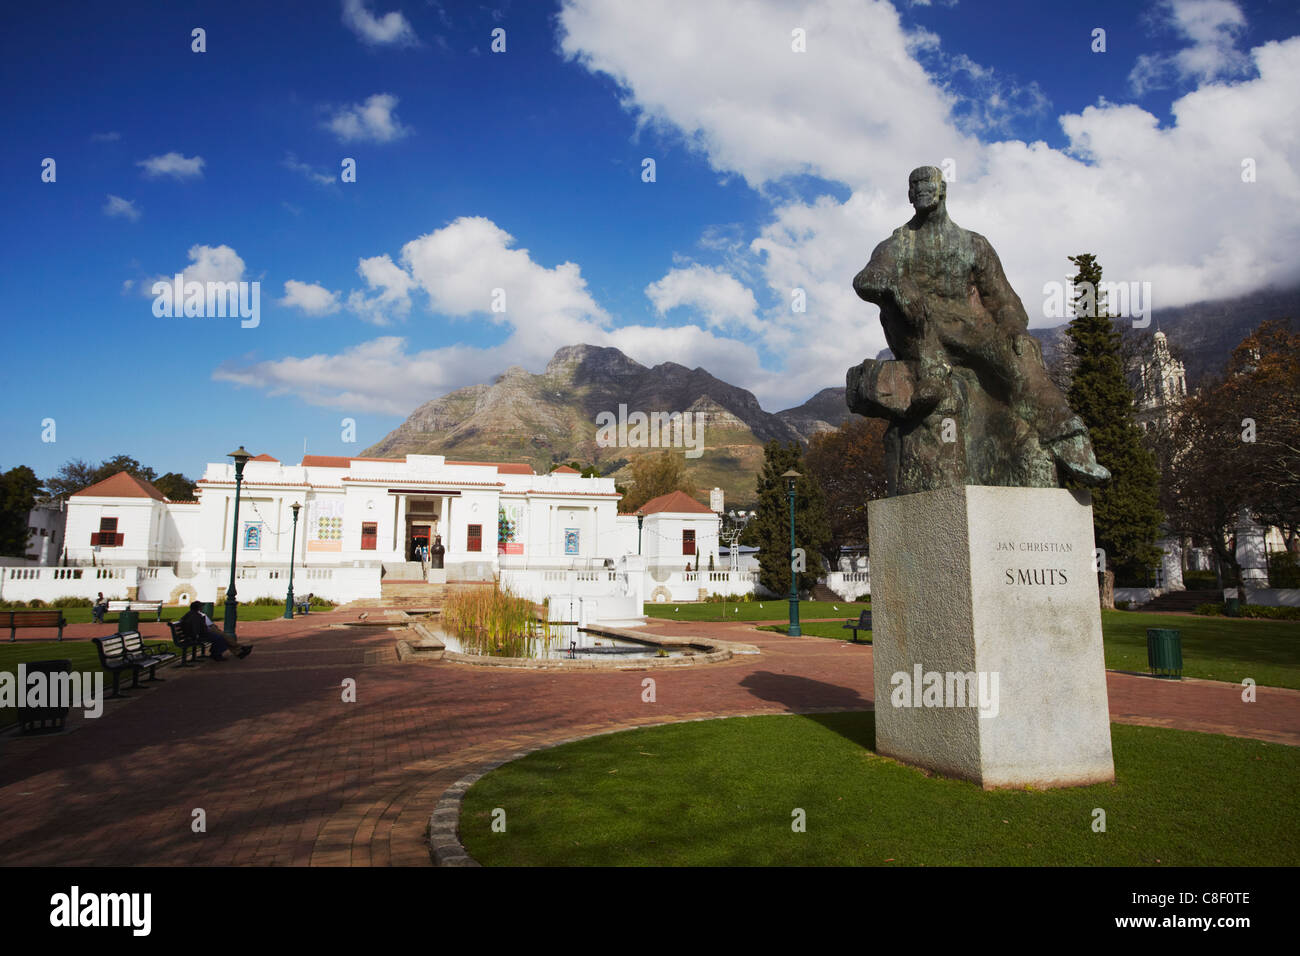 Jan Smuts statue in front of National Gallery, Company's Gardens, City Bowl, Cape Town, Western Cape, South - Stock Image